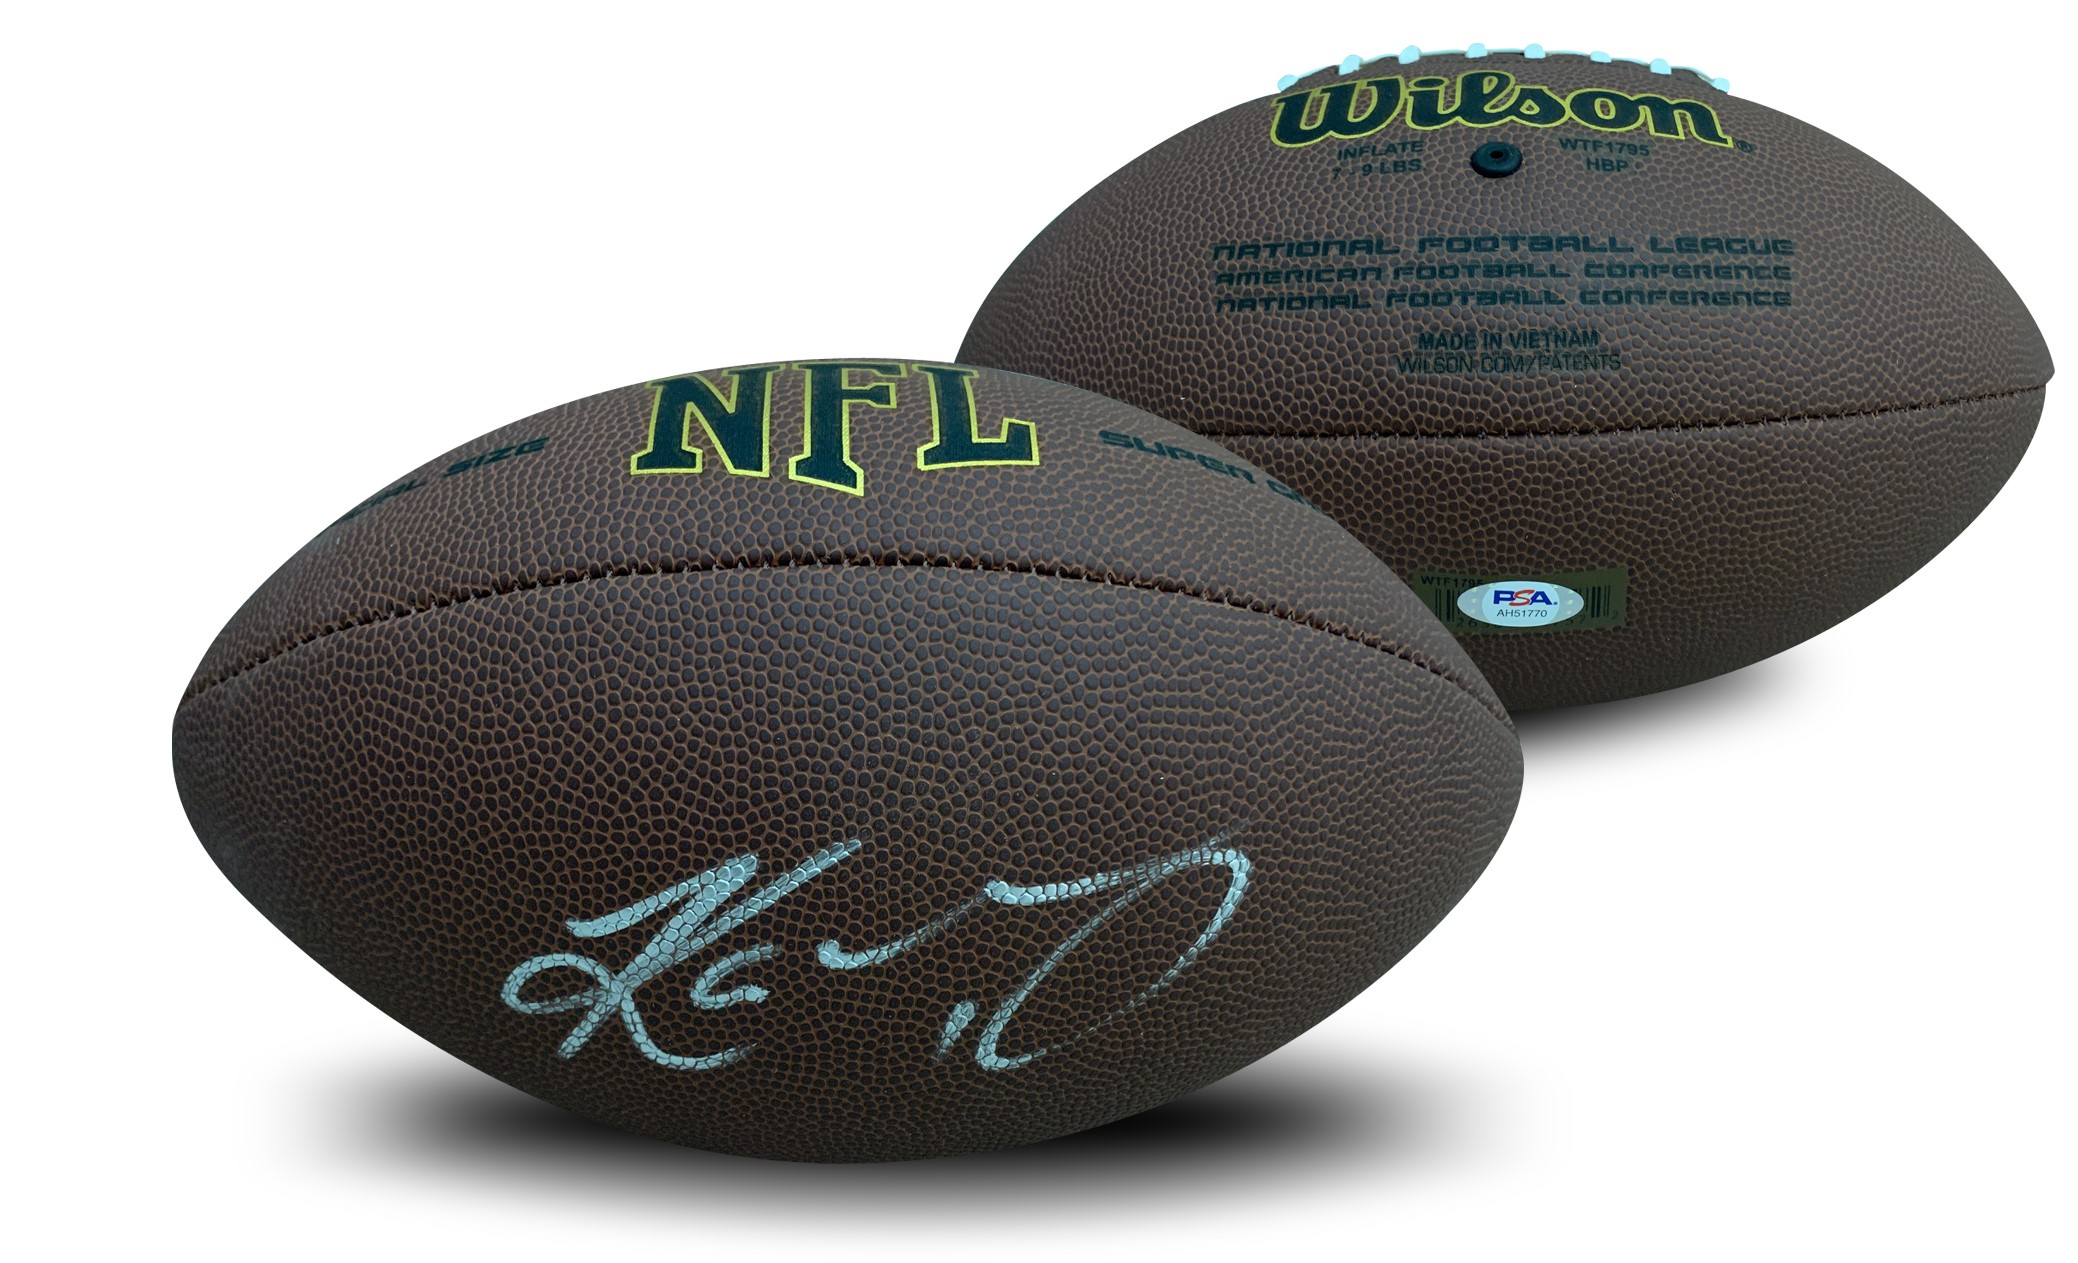 Kyler Murray Autographed Arizona Cardinals Signed NFL Replica Full Size Football PSA DNA COA Arizona Cardinals star Quarterback Kyler Murray has autographed this officially licensed full size NFL replica football.  Autograph is authenticated by PSA/DNA, the world's leading authenticator of sports autographs. Comes with their unique sticker # fixed to the item and verified on their website. Also, comes with their certificate of authenticity with same matching #.